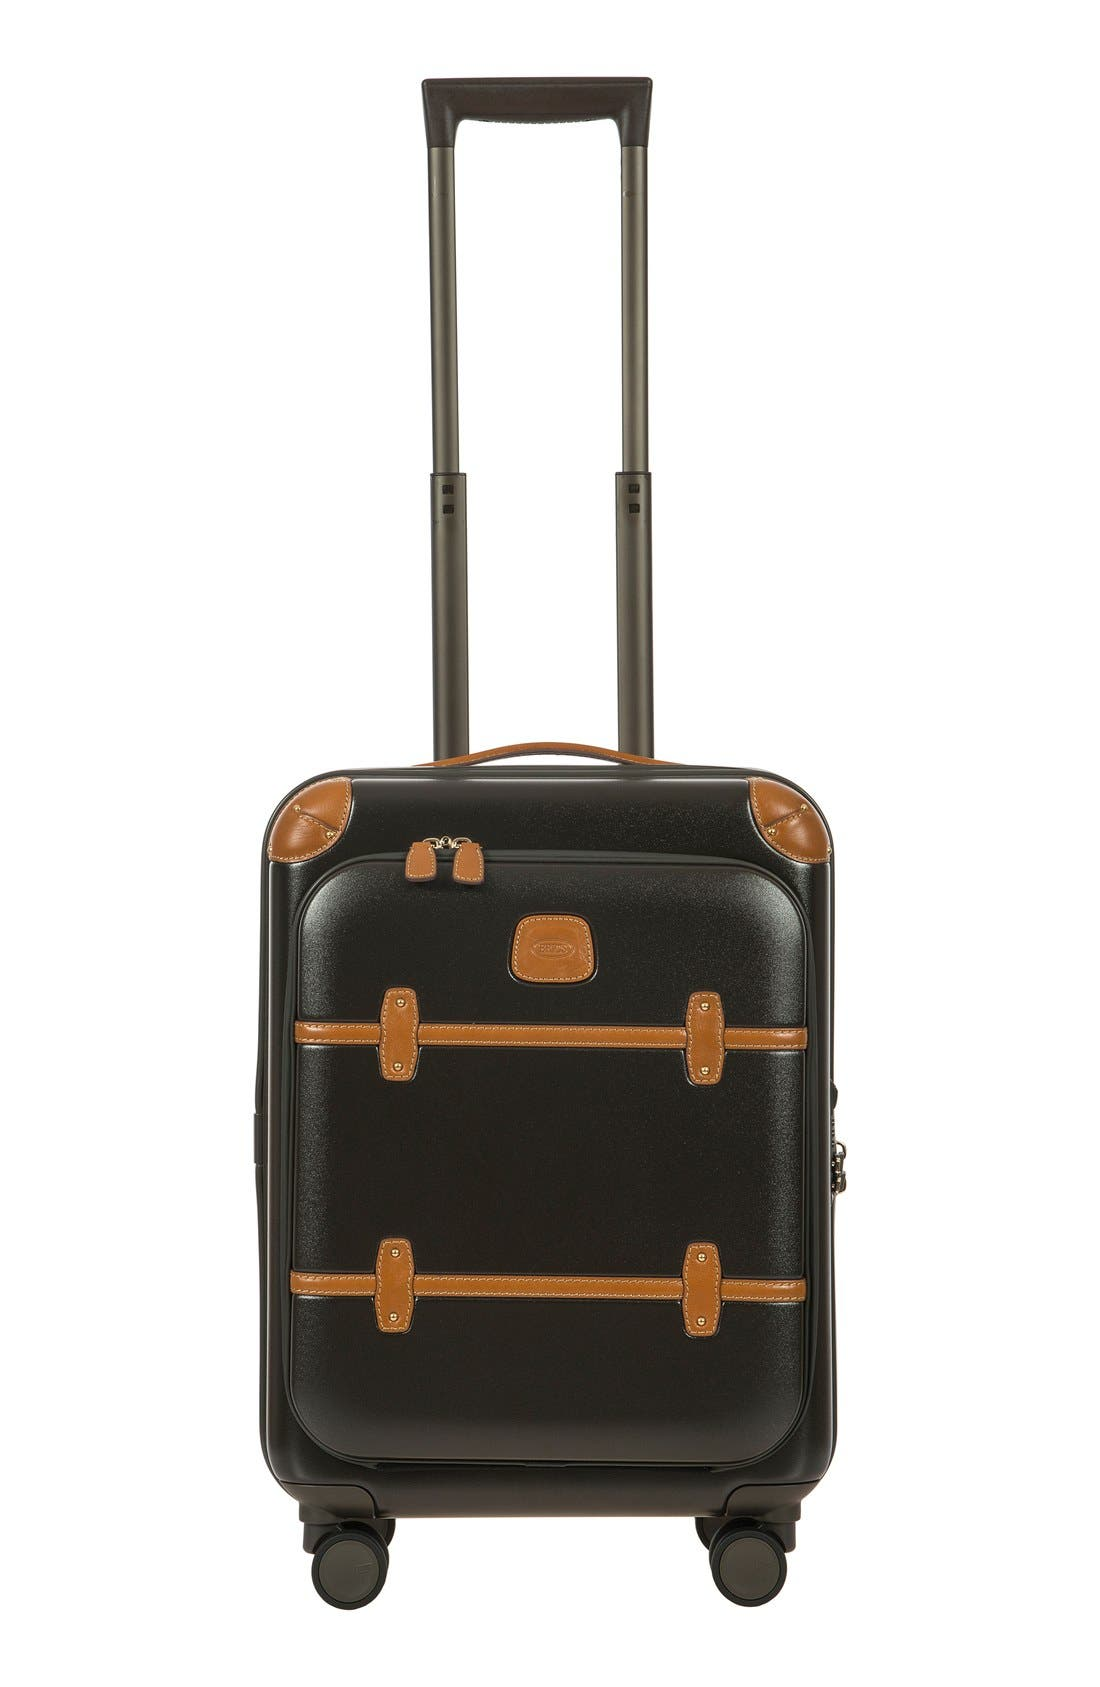 Alternate Image 1 Selected - Bric's Bellagio 2.0 21-Inch Rolling Carry-On